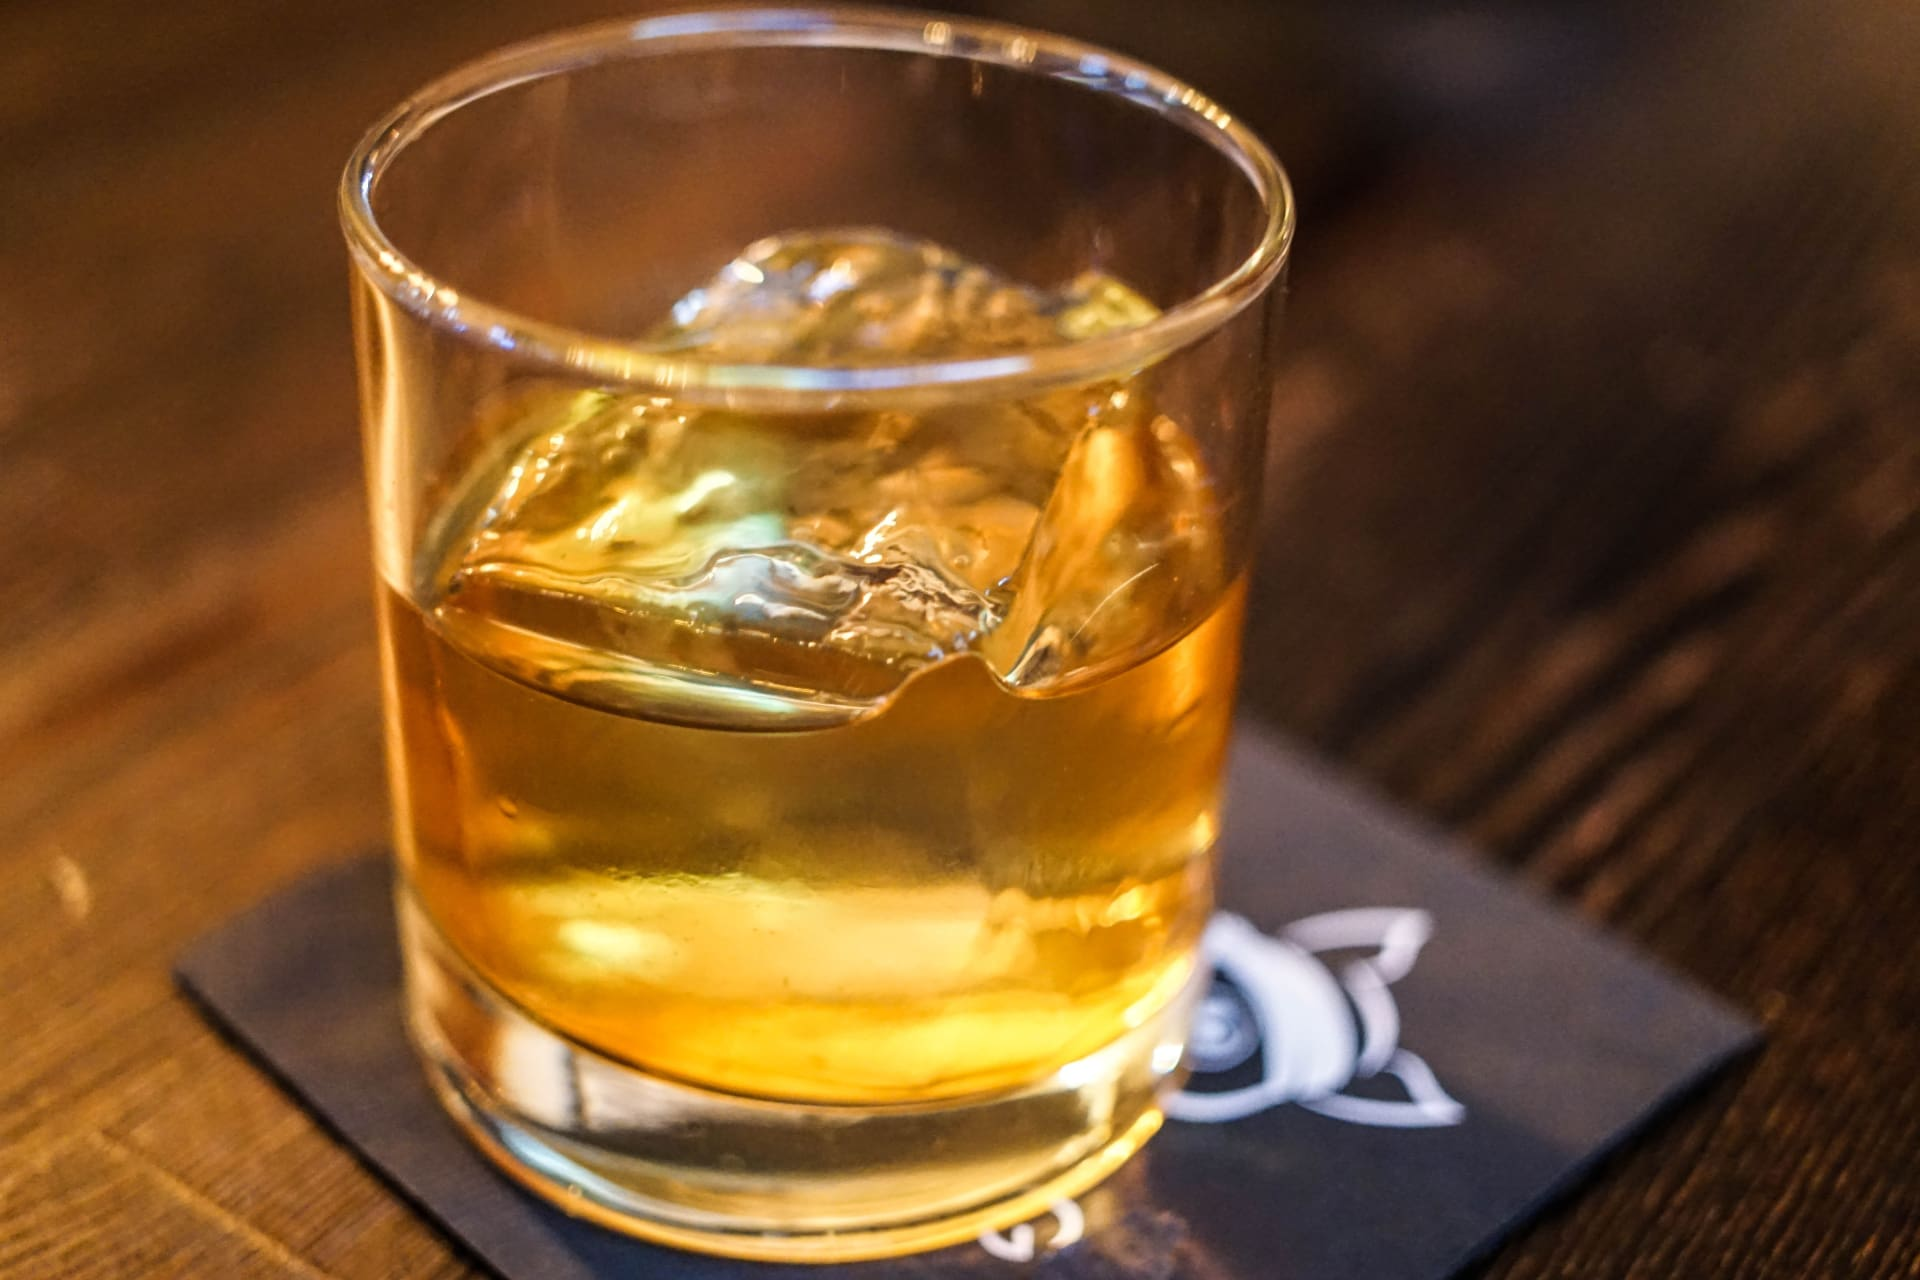 DRINK OF THE WEEK: FLAME ON AT THE BLIND PIG